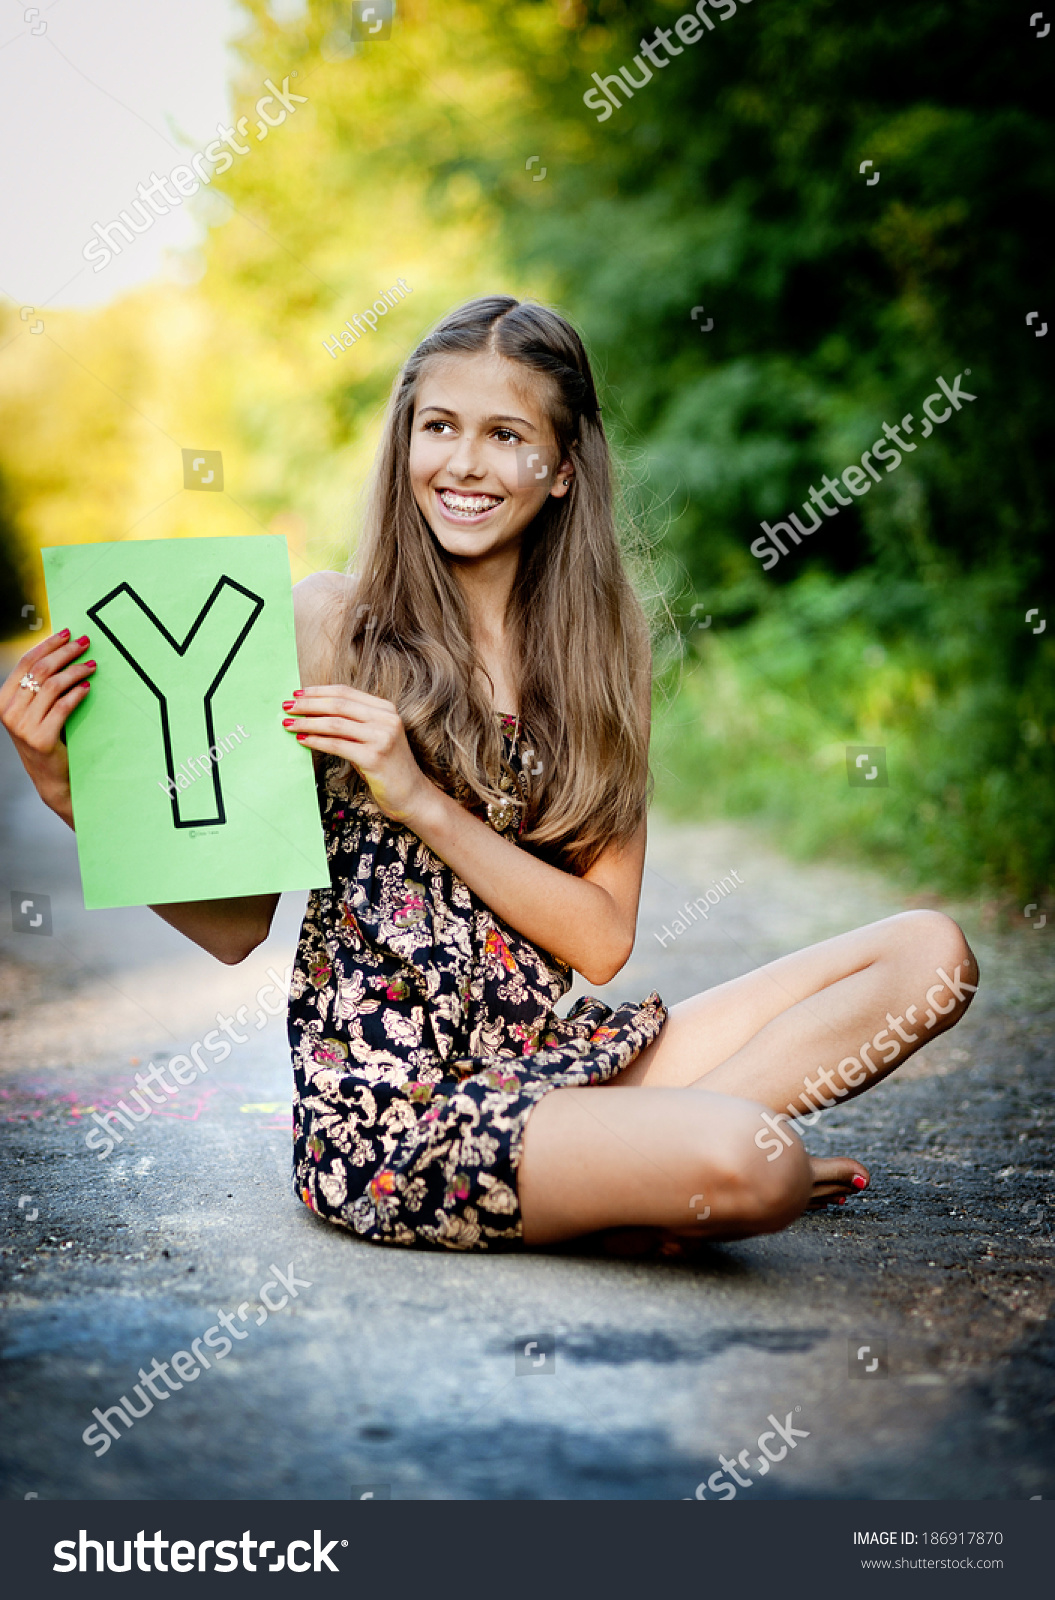 https://image.shutterstock.com/shutterstock/photos/186917870/display_1500/stock-photo-beautiful-teenage-girl-is-smiling-and-showing-letter-y-in-green-sunny-park-186917870.jpg